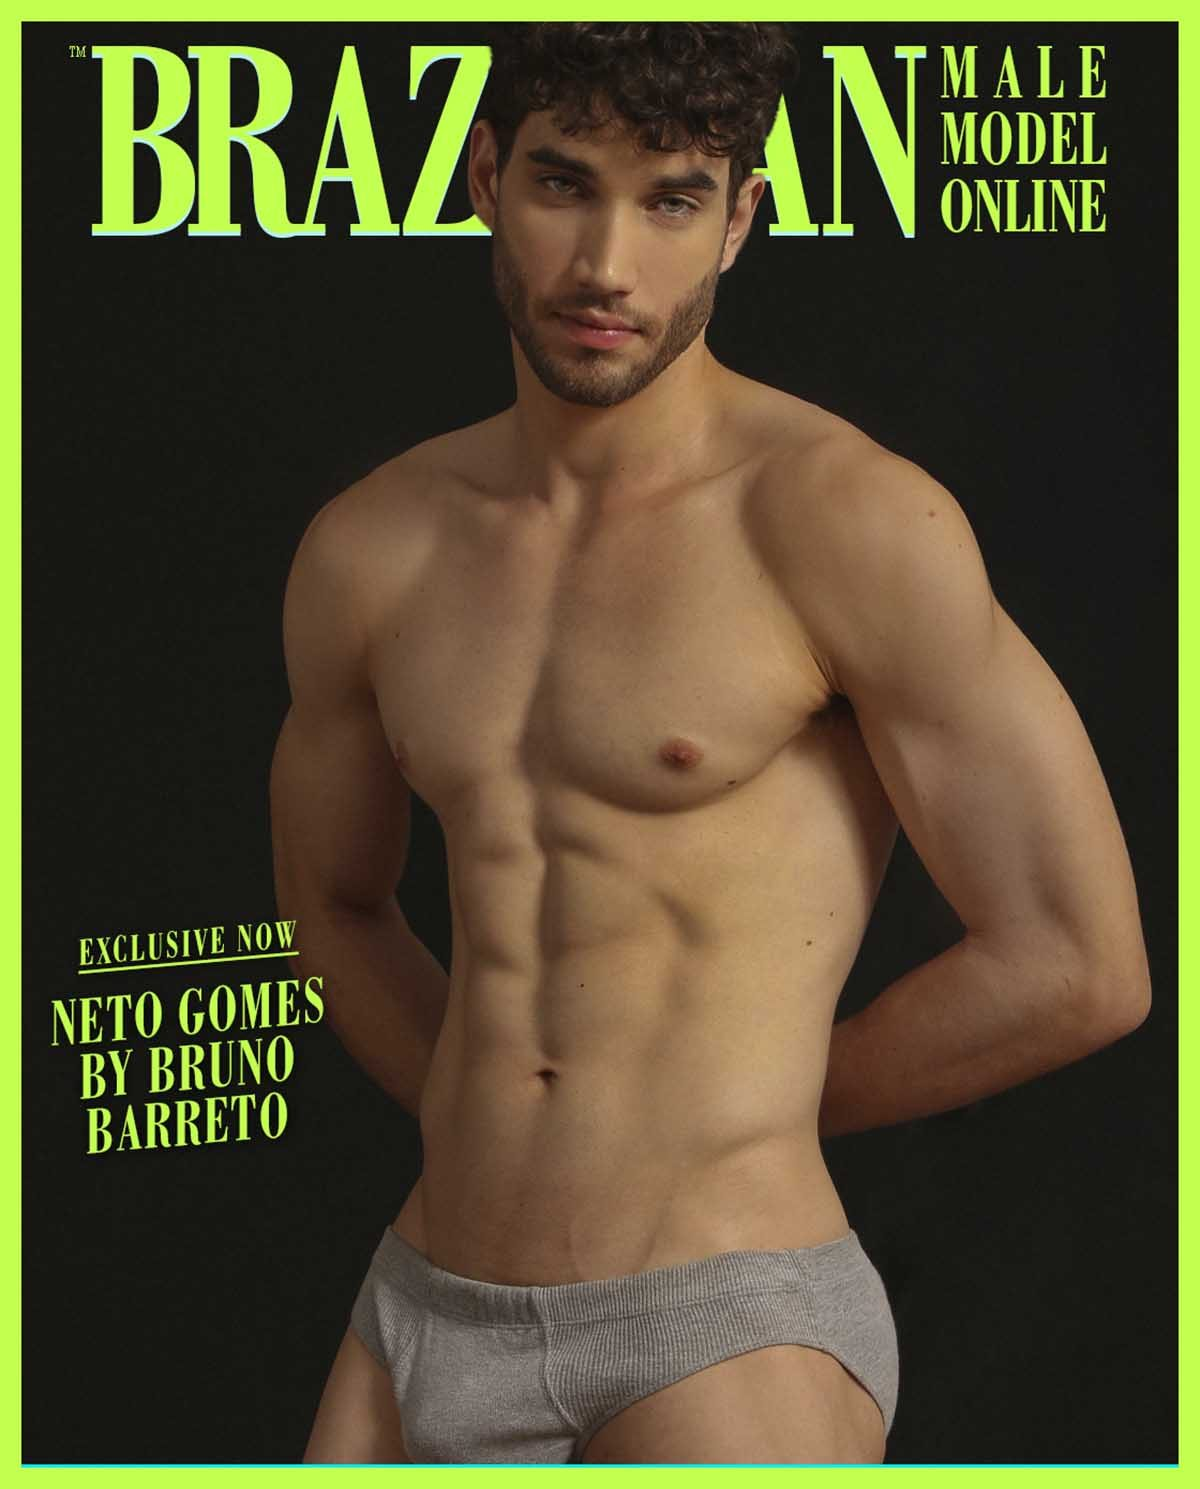 Neto Gomes by Bruno Barreto